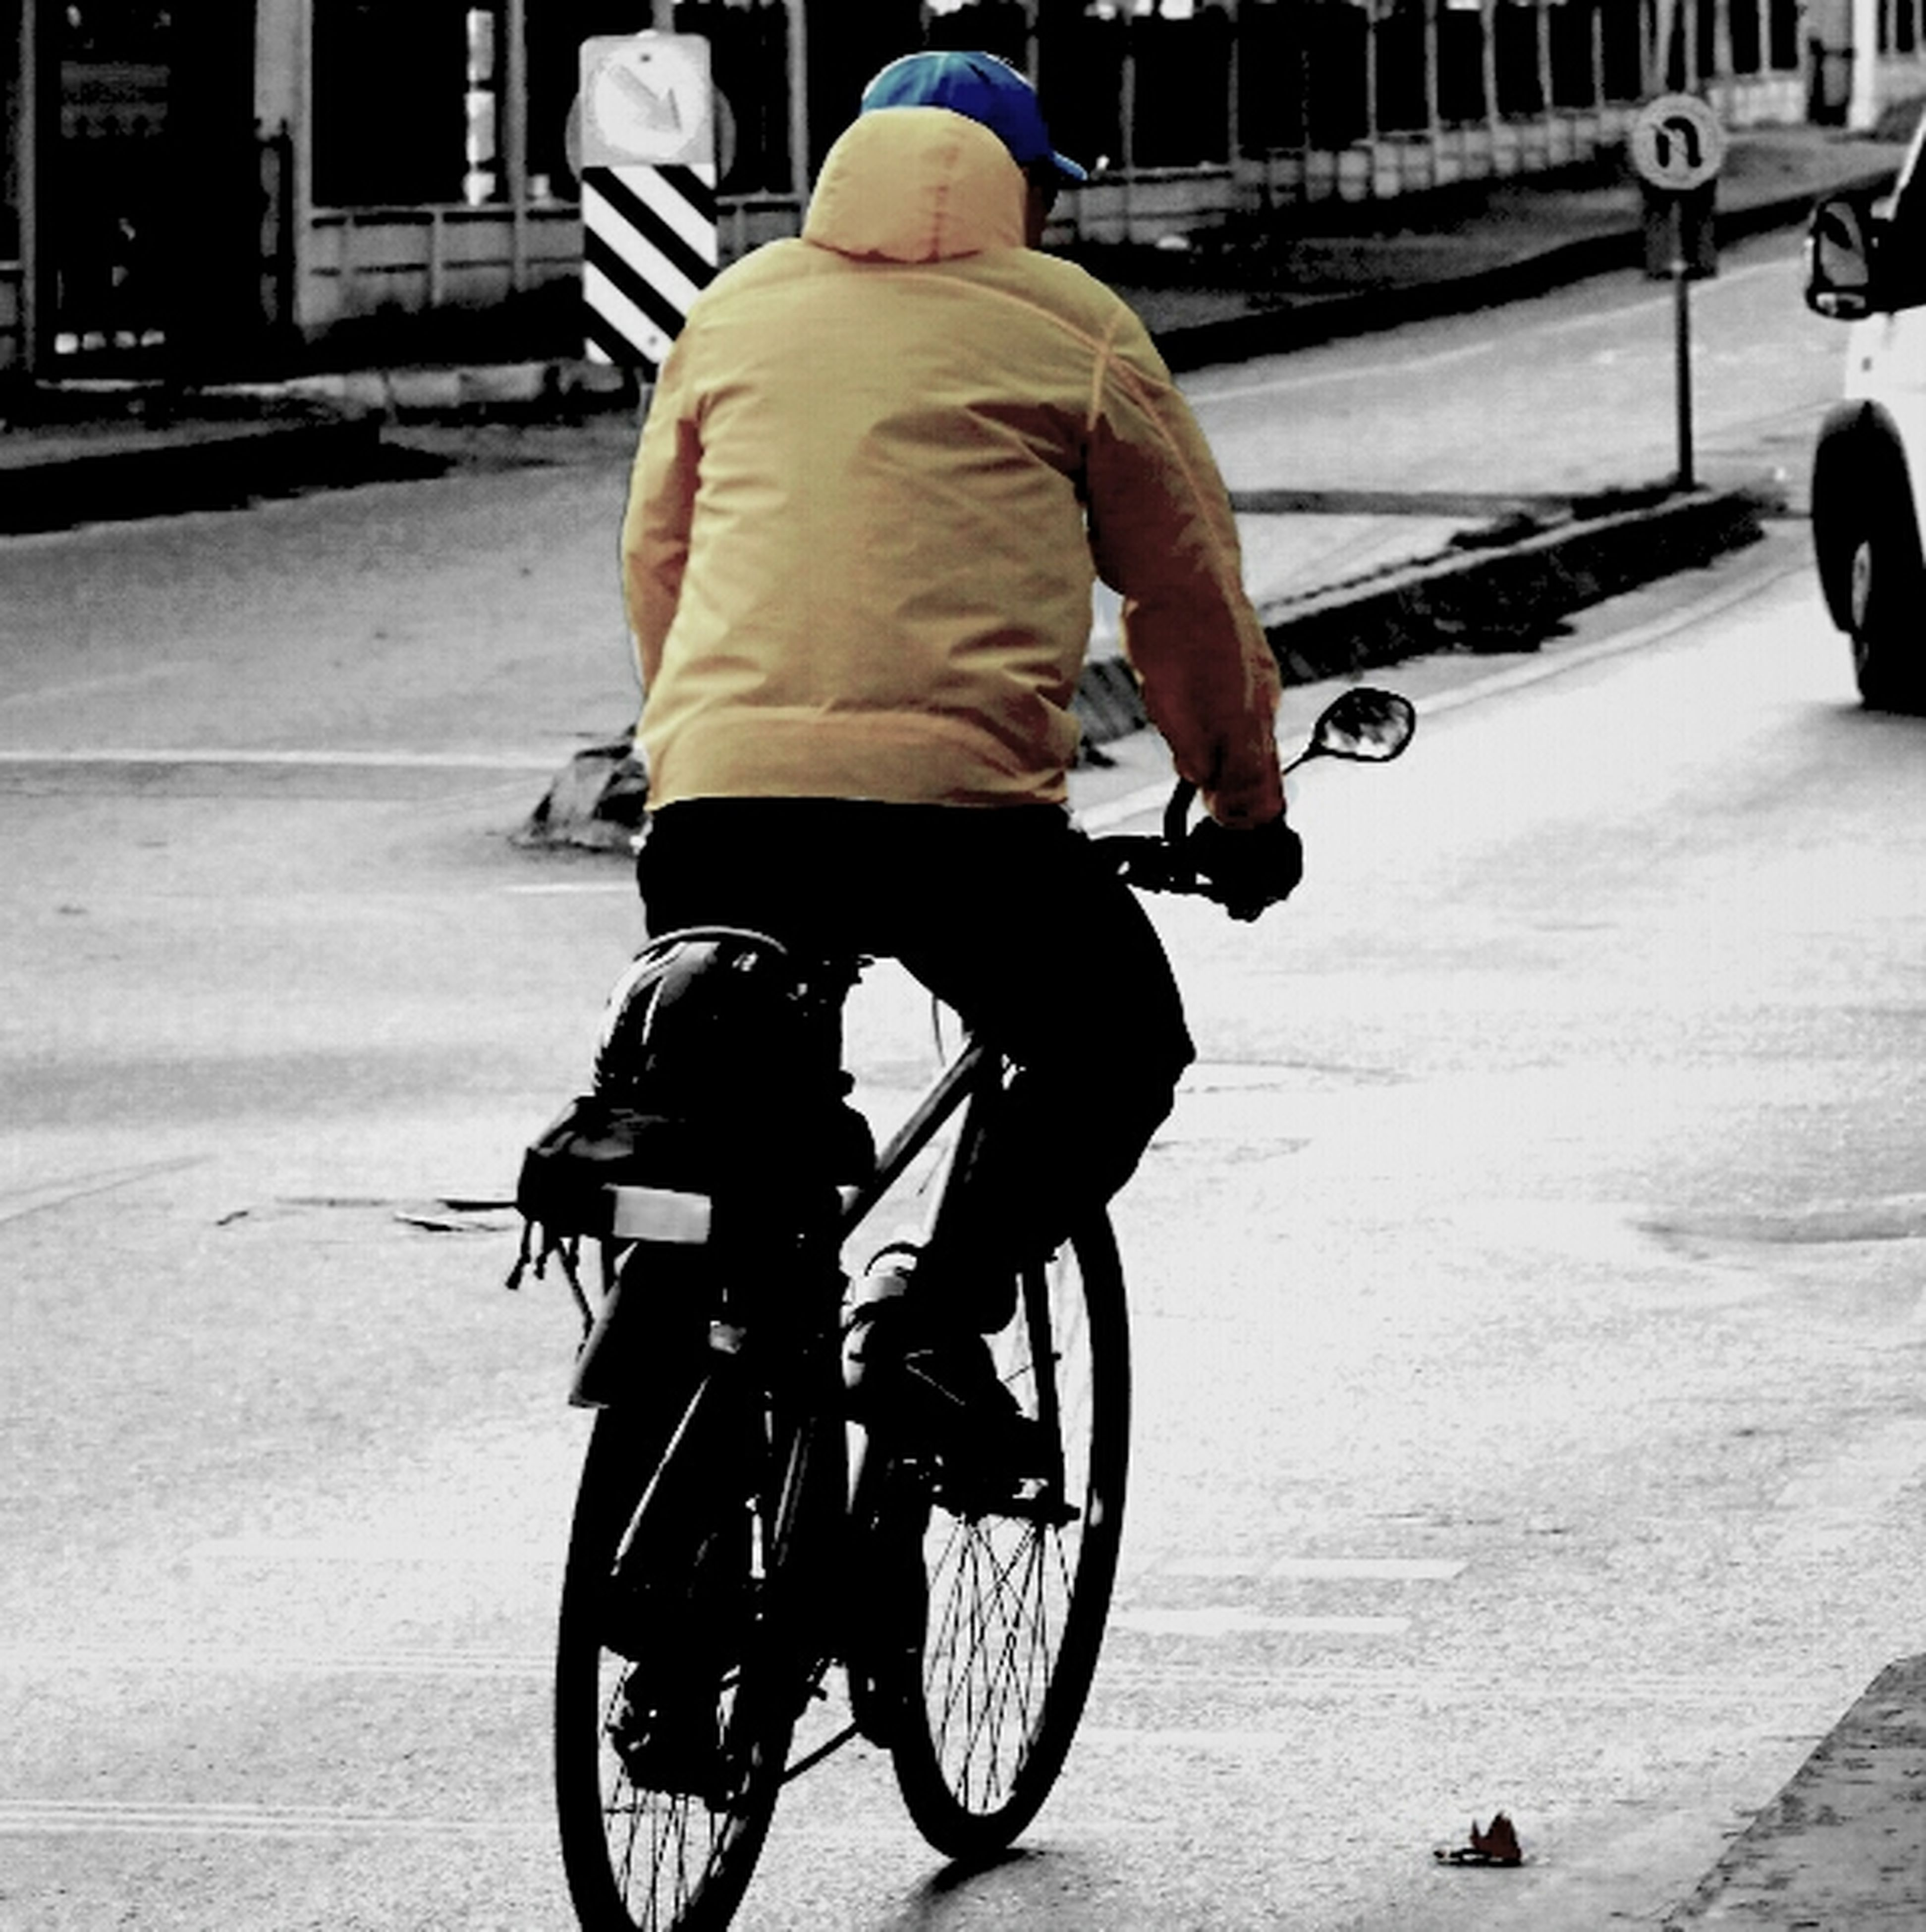 bicycle, transportation, mode of transport, land vehicle, riding, cycling, street, men, lifestyles, full length, road, on the move, leisure activity, travel, stationary, motion, casual clothing, road marking